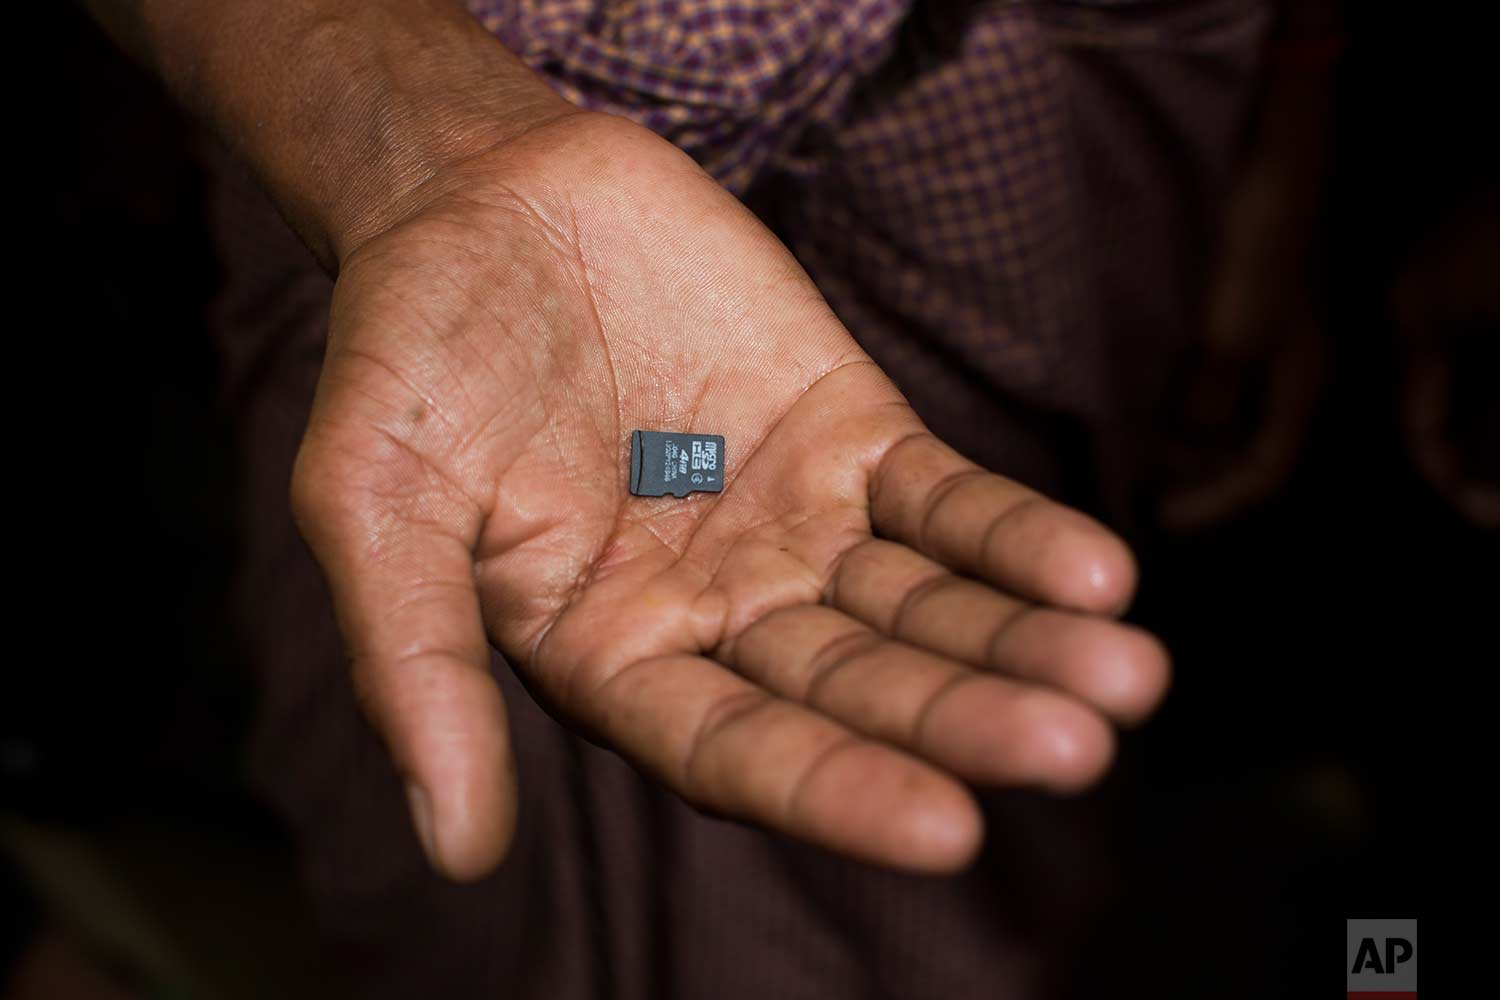 In this Thursday, Sept. 7, 2017, photo, a Rohingya Muslim displays a memory card carried across the border from Myanmar into Bangladesh in Teknaf area. Cellphones to reach out to separated relatives, bags of spices that remind them of home and solar panels to bring a little light to their ragged tents are some of the things the exhausted Rohingya Muslims carry with them as they escape the violence that they've endured in Myanmar's Rakhine state over the last two weeks. Those who don't carry phones still often bring memory cards from their abandoned ones. (AP Photo/Bernat Armangue)